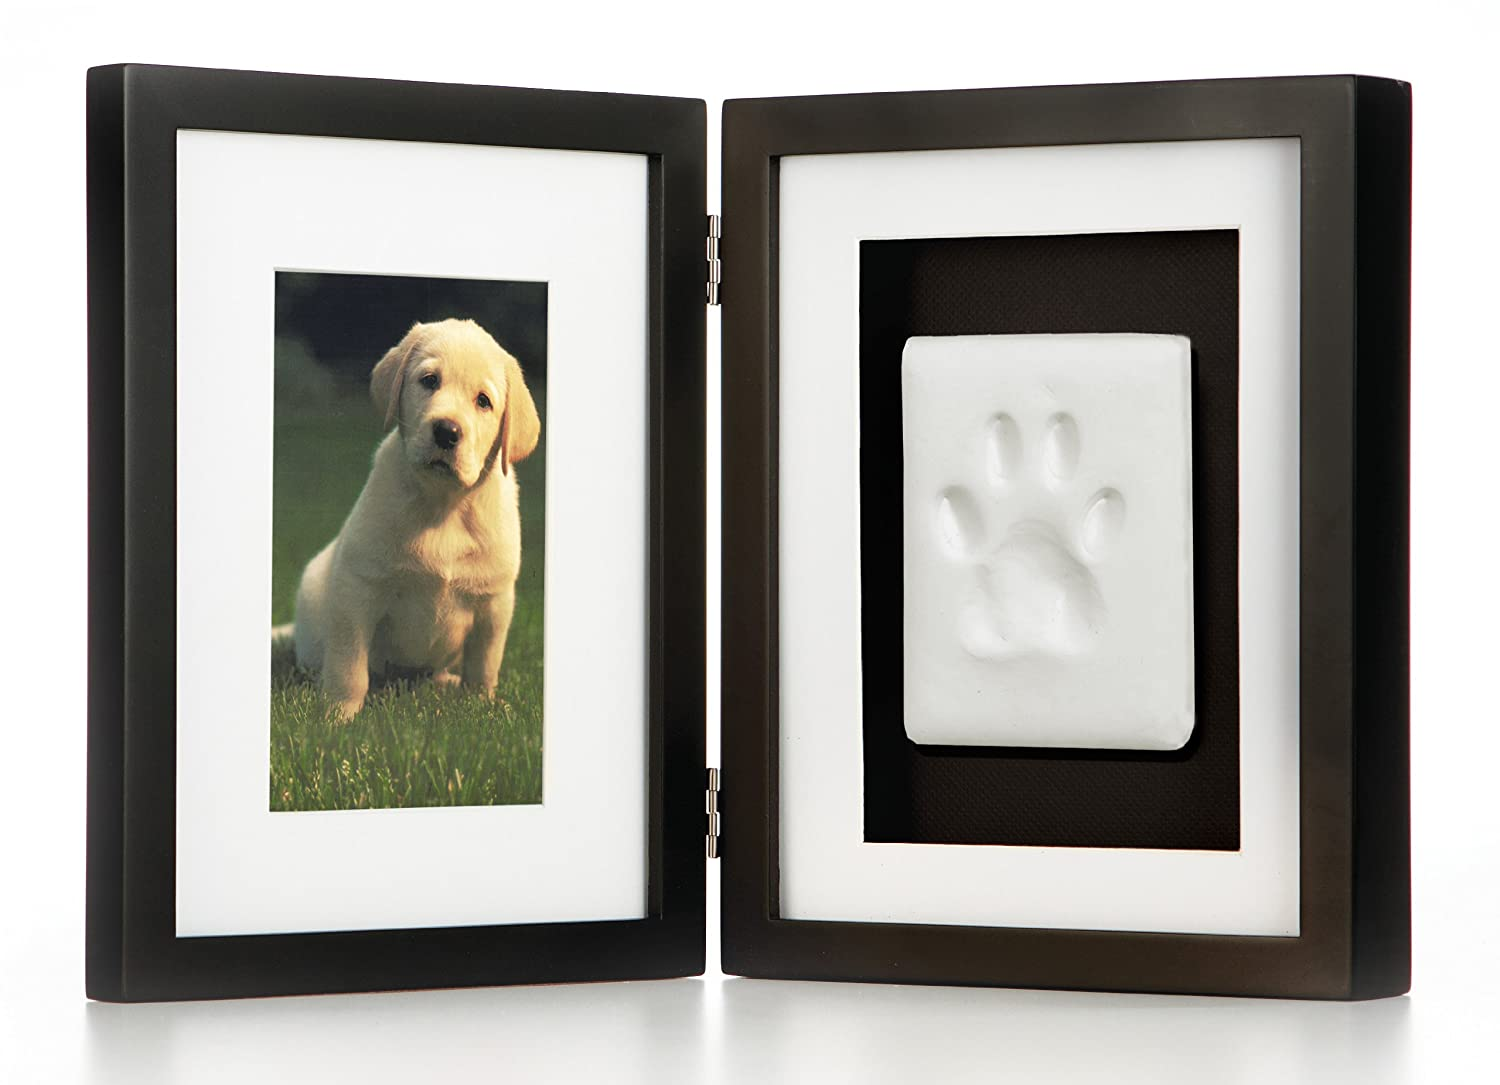 amazoncom pearhead pawprints pet memorial desk frame black dog print picture frame pet supplies - Dog Memorial Frame